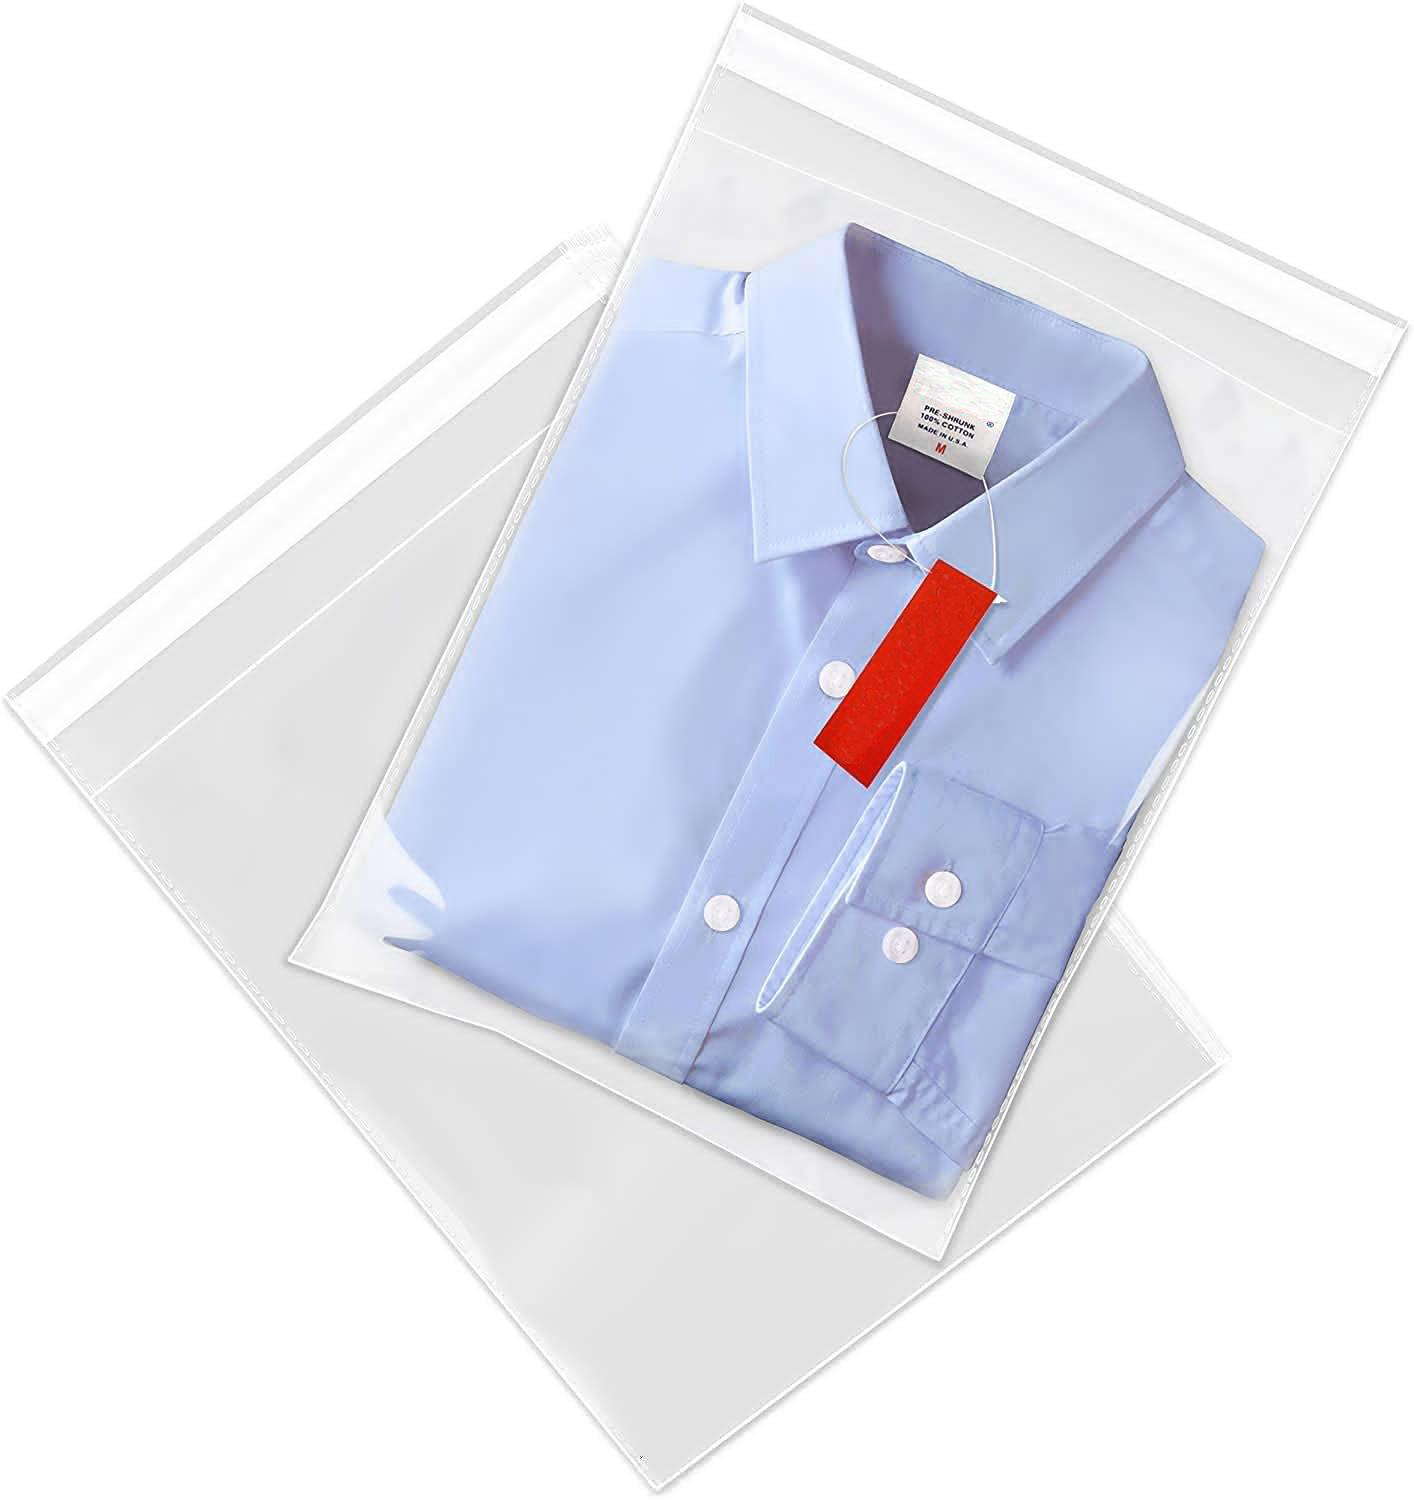 100 Pack Poly Transparent Pouch Opp Self Adhesive Clear Plastic Bag for T Shirt, Clothes Storage Bag(China)